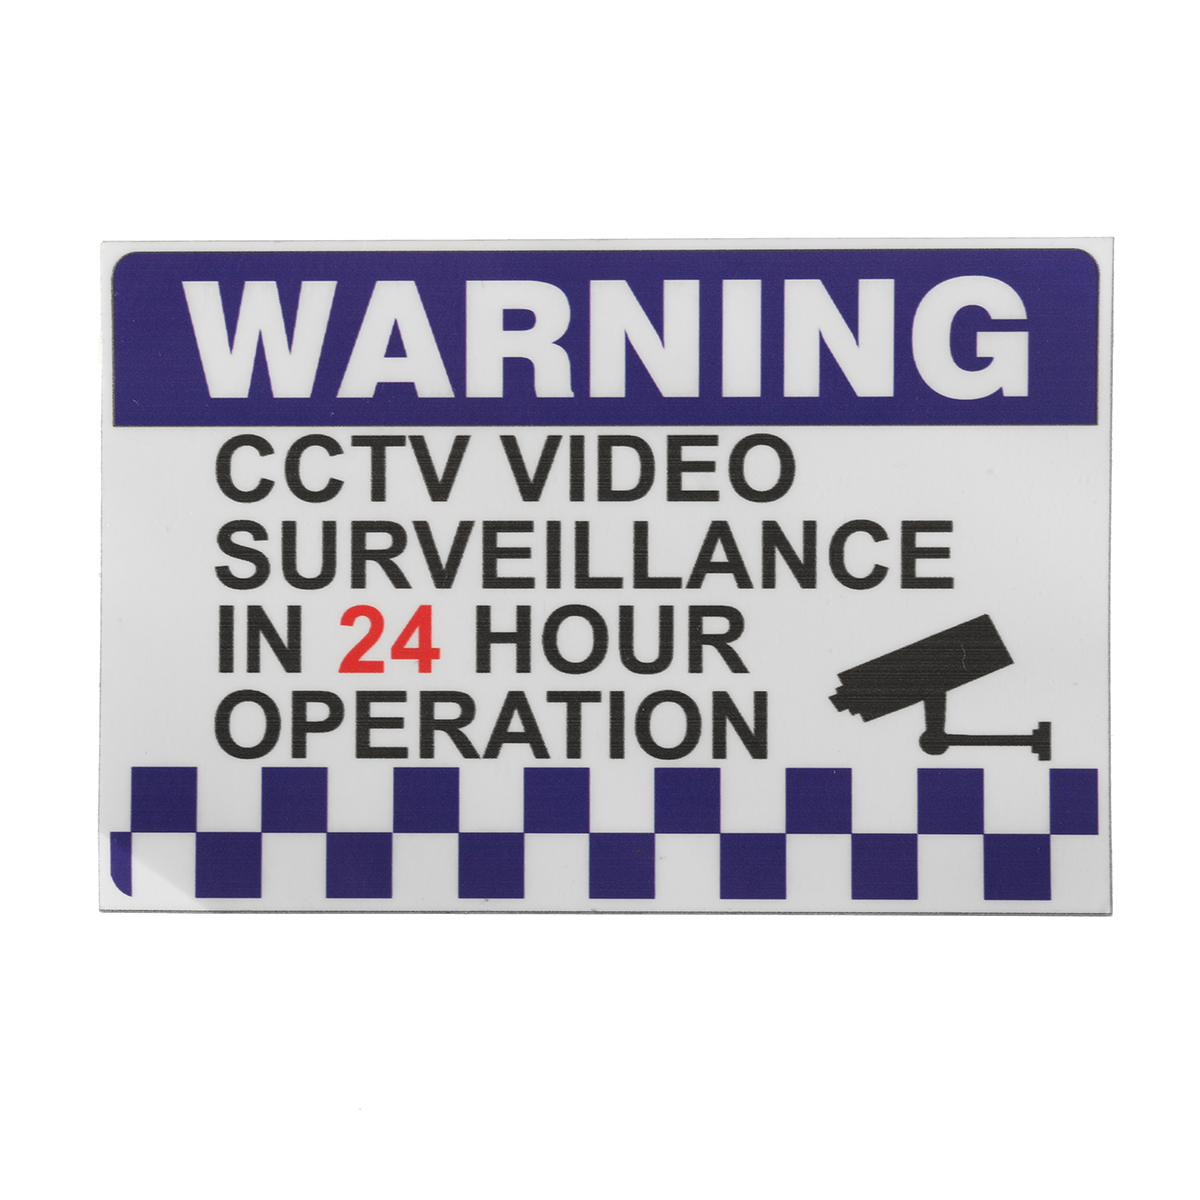 100x150mm Internal Warning CCTV Security Surveillance Camera Decal Sticker